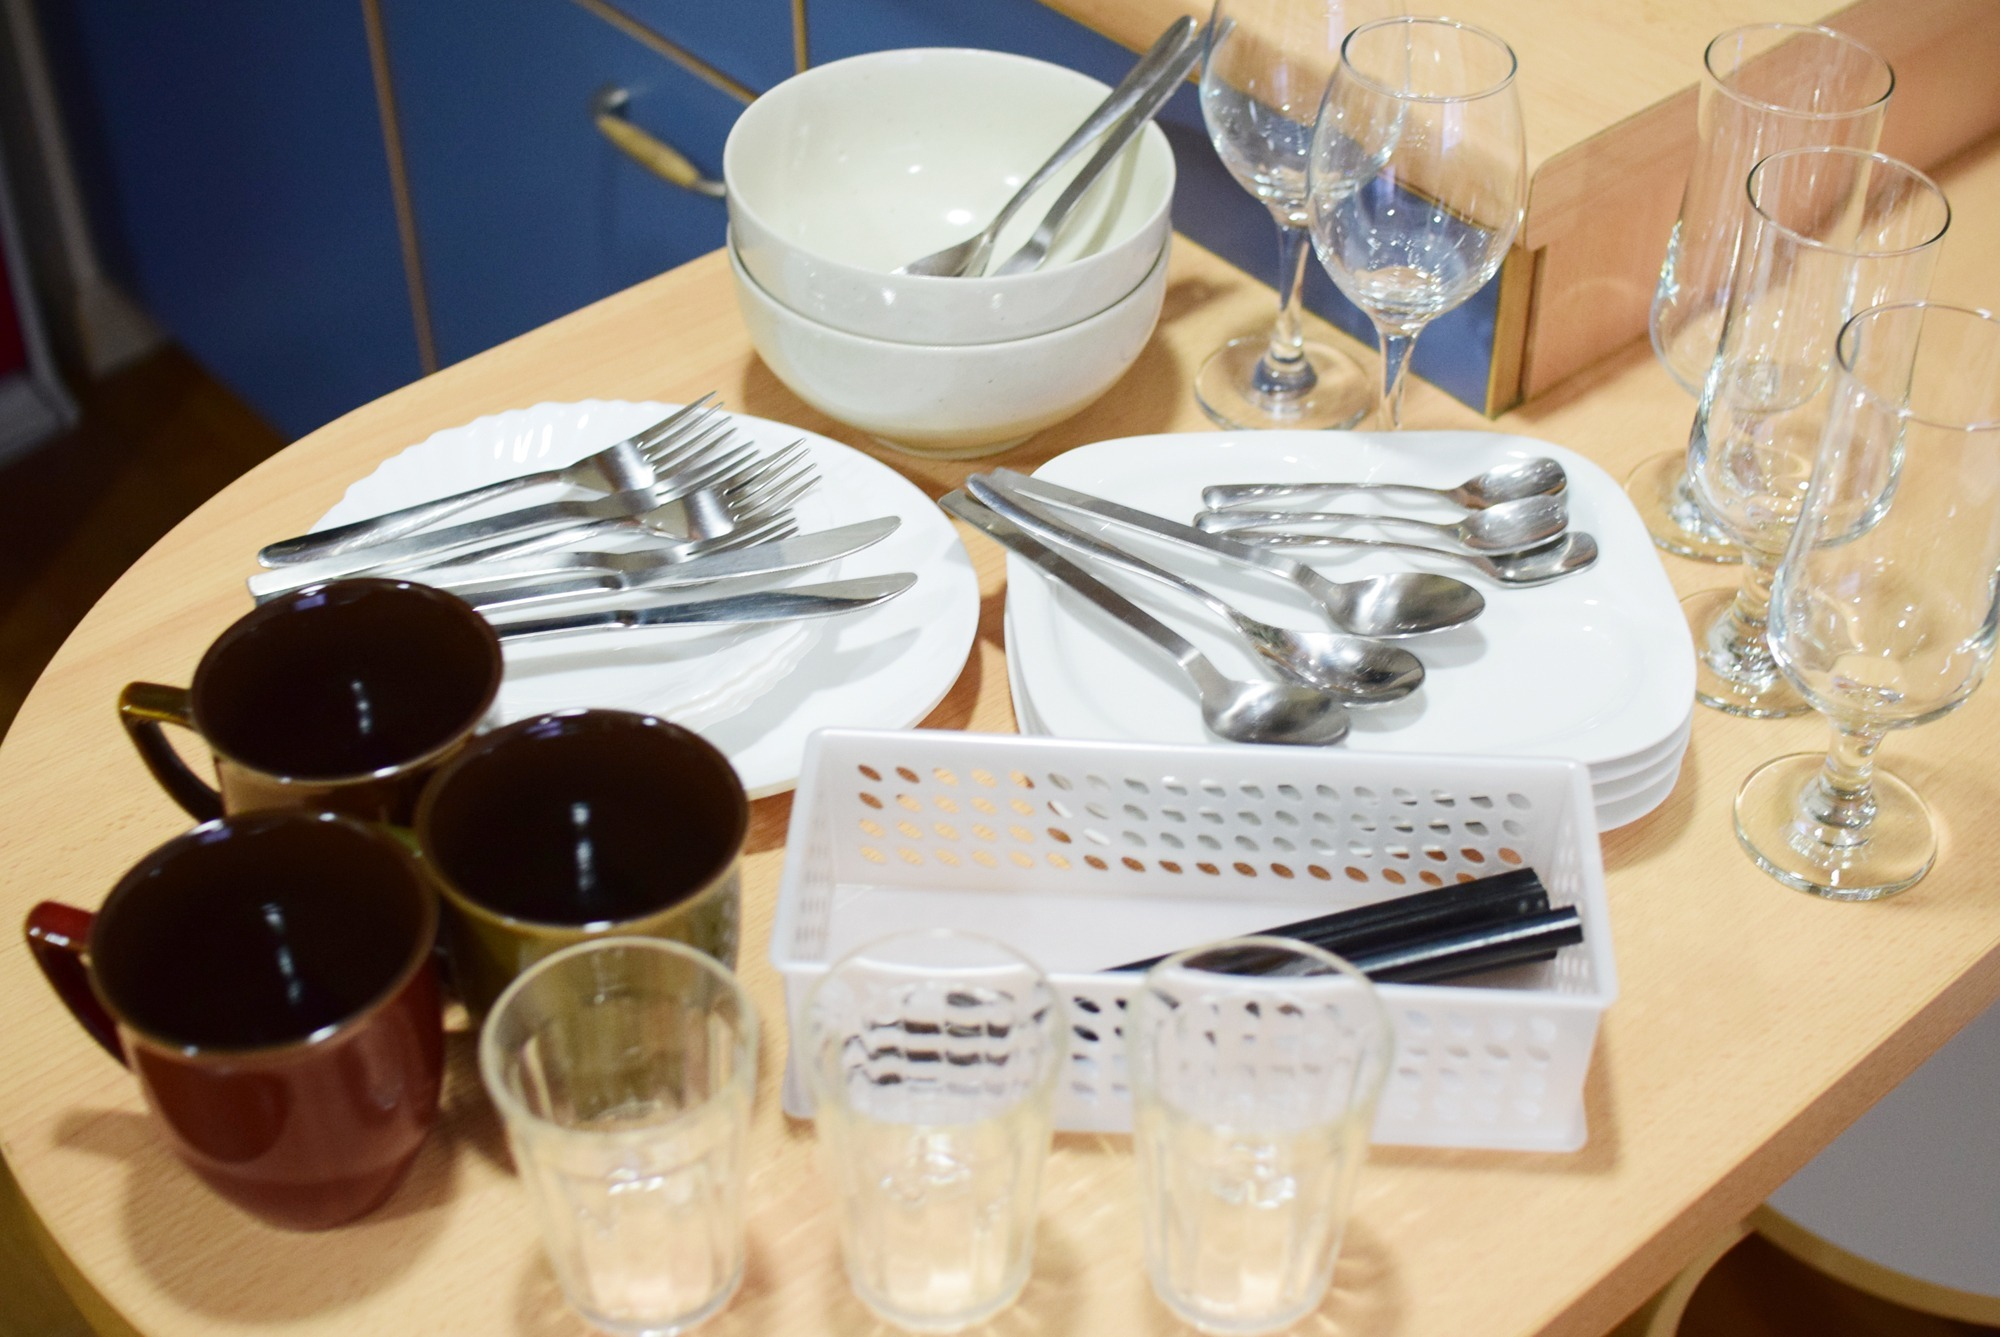 Enough tableware. Make your stay comfortable.